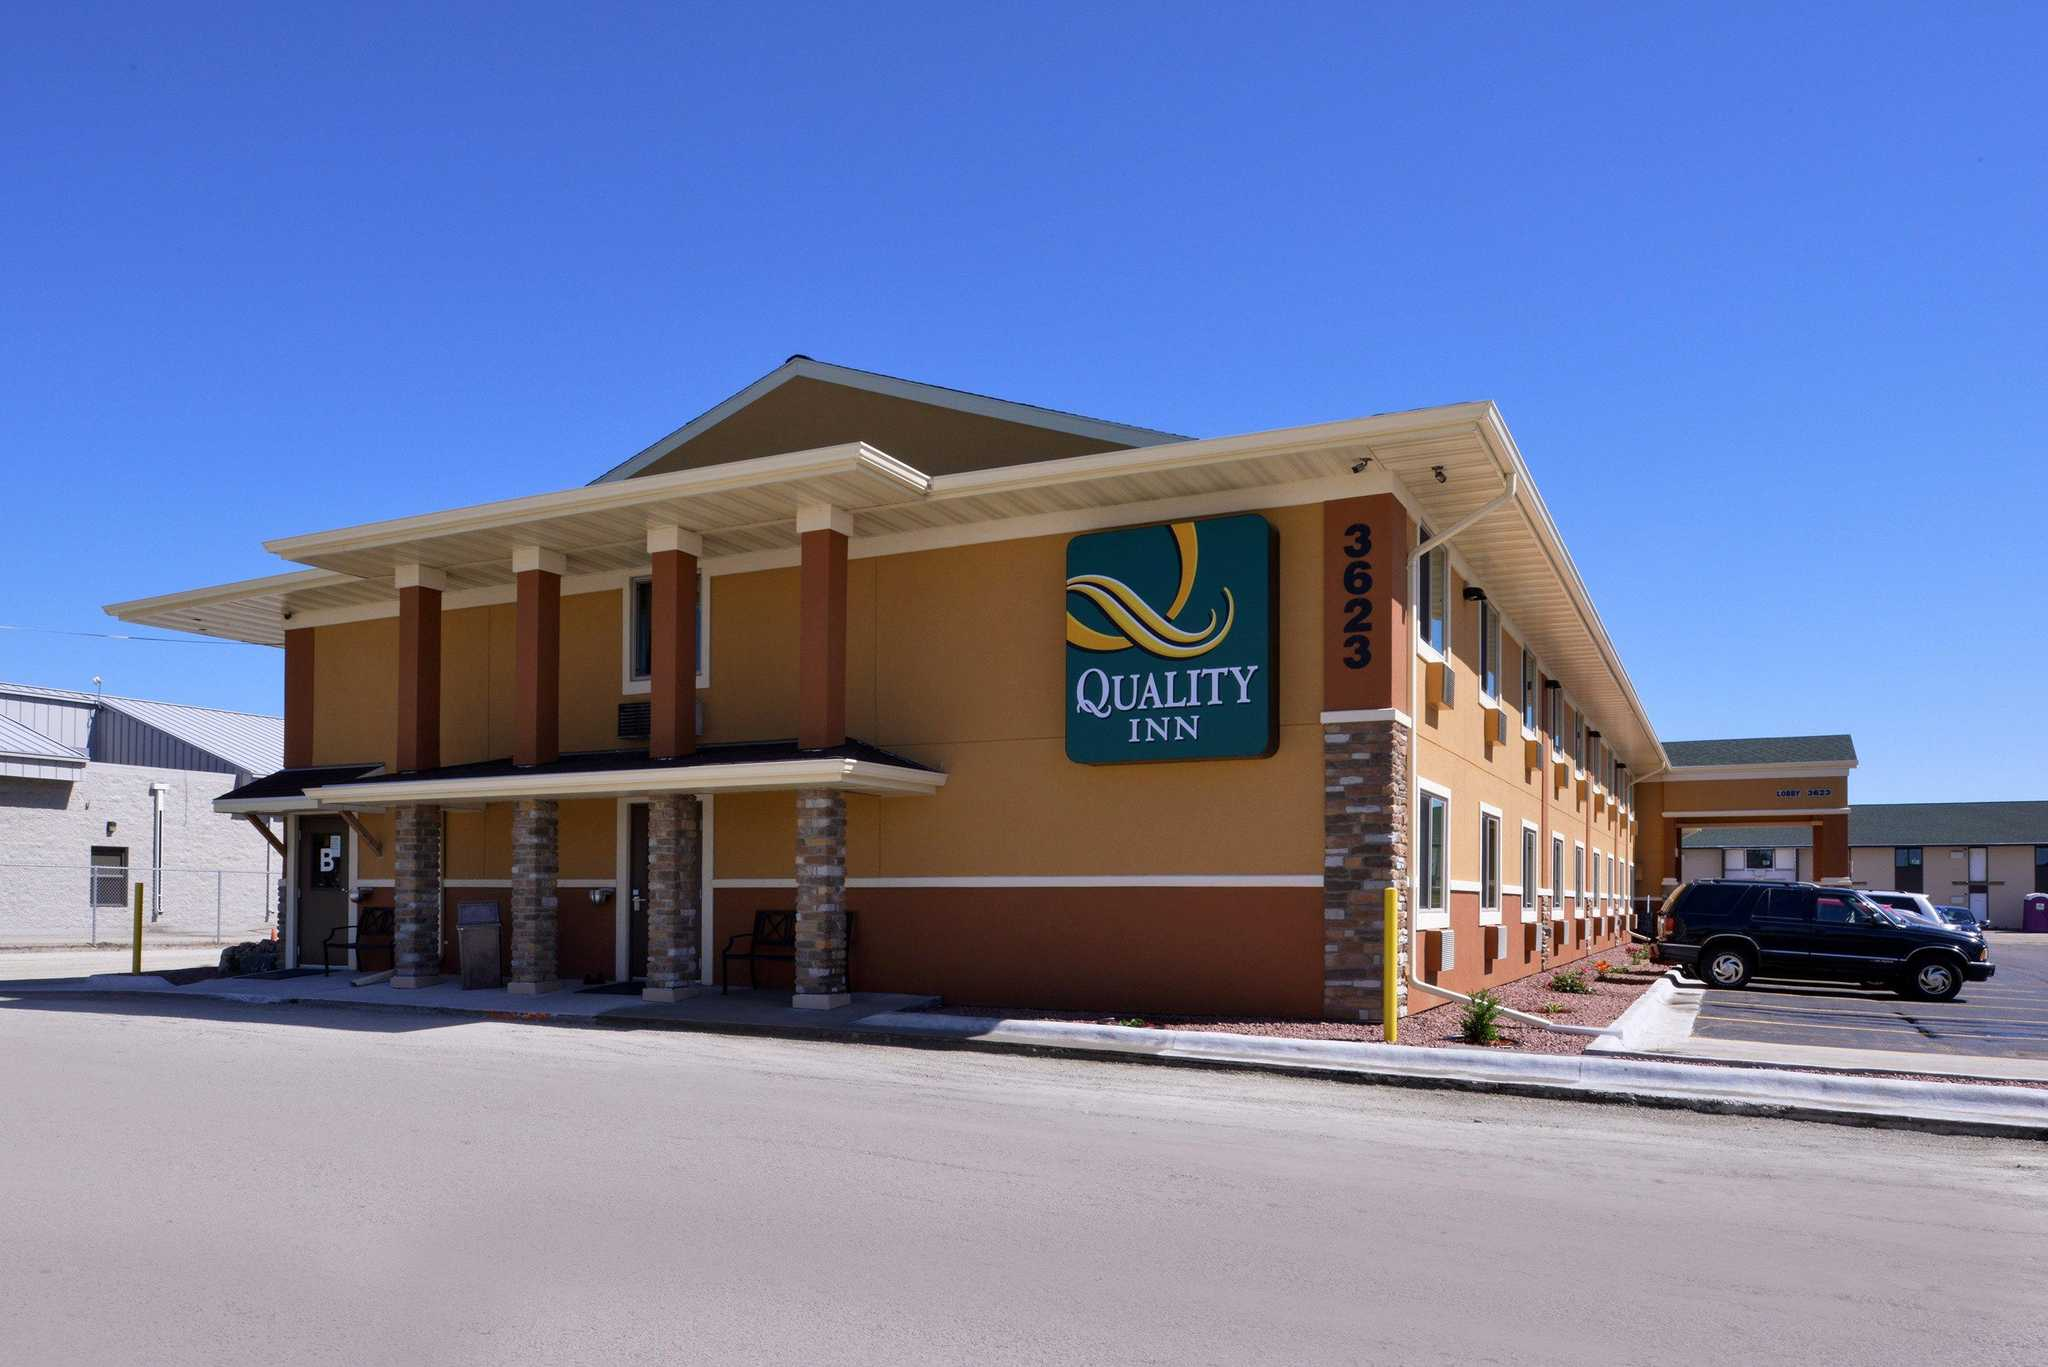 Quality inn coupons near me in appleton 8coupons for Hotels 8 near me